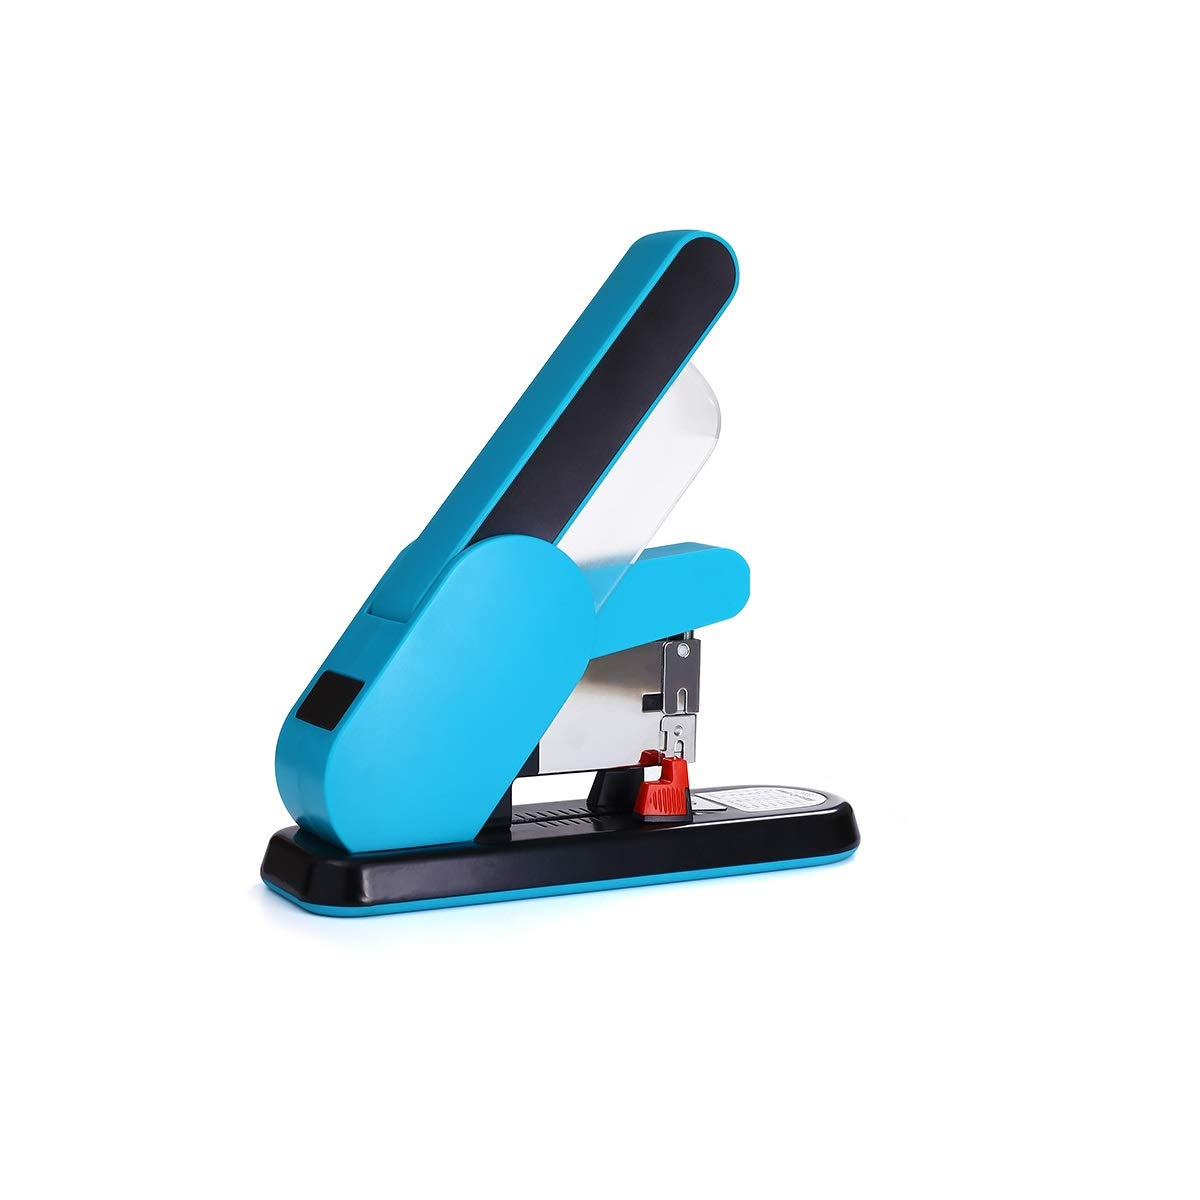 Shengshihuizhong Labor-Saving Stapler, Heavy-Duty Large Stapler, Staple Stapler, Desktop Large-Scale Heavy-Duty Binding Machine, Standard Multi-Functional Office Supplies, Orange, Blue Grapadora,